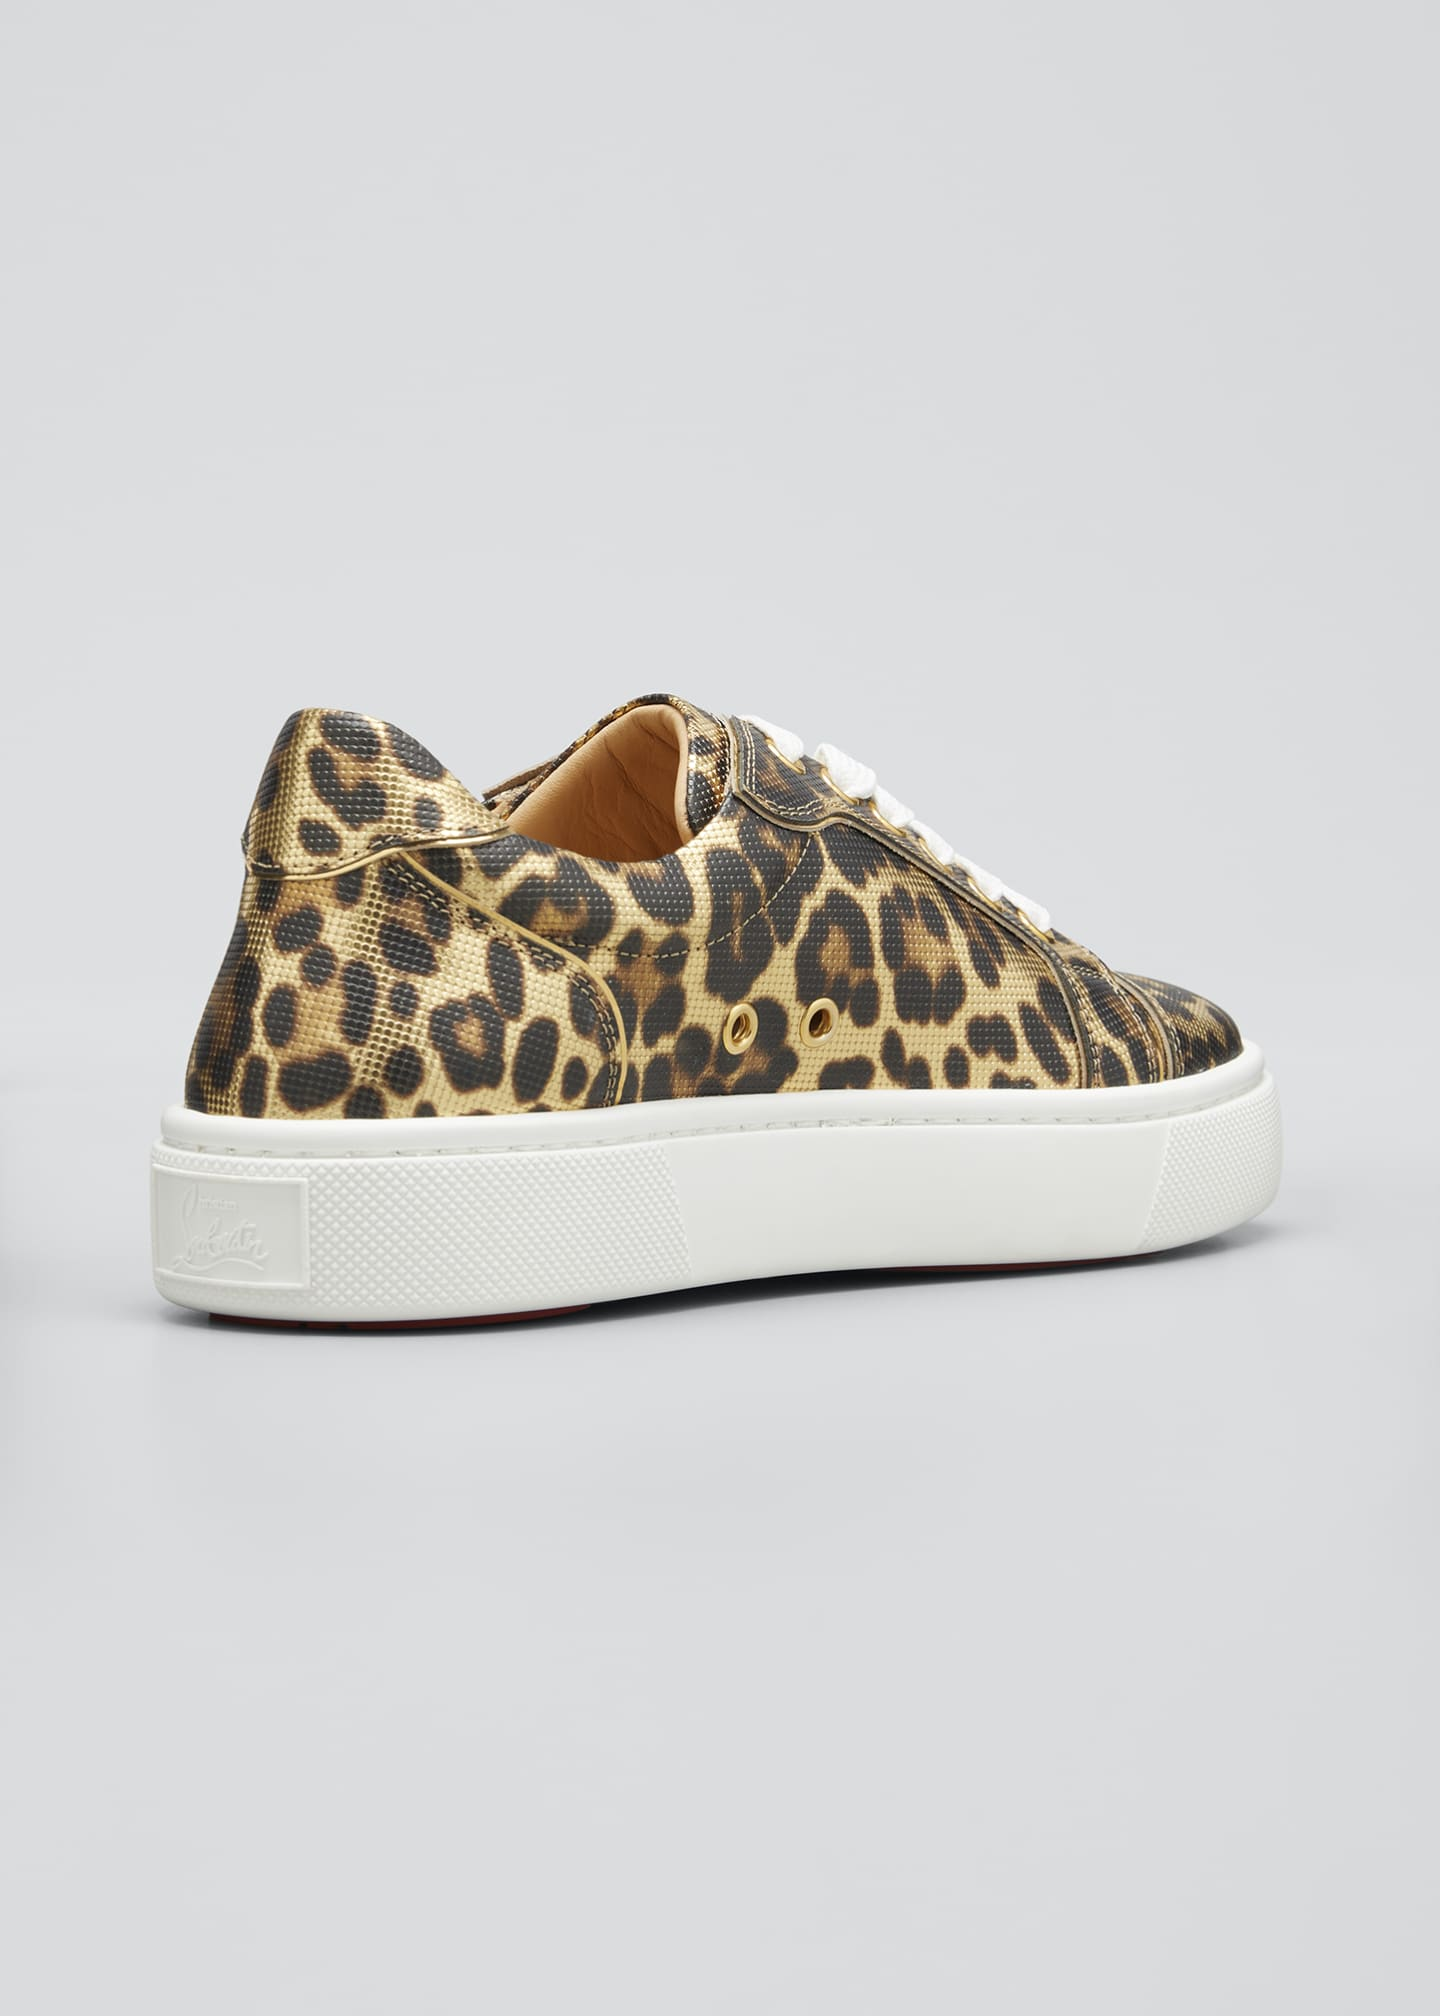 Image 2 of 3: Vierissima Leopard Red Sole Sneakers